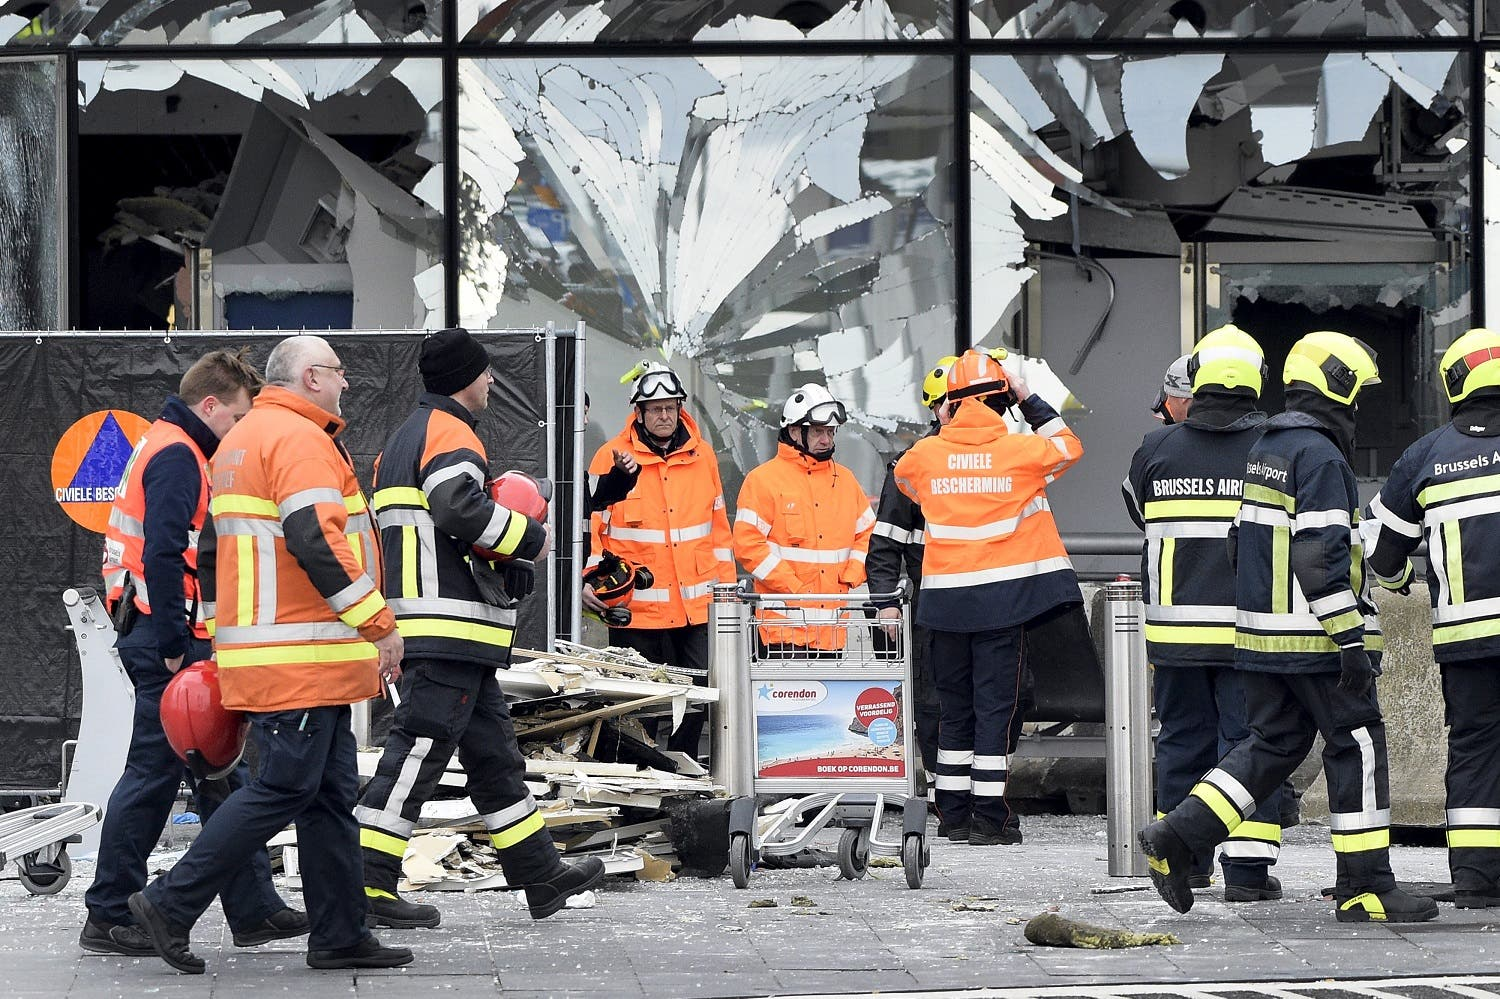 Broken windows of the terminal at Brussels national airport are seen during a ceremony following bomb attacks in Brussels metro and Belgium's National airport of Zaventem, Belgium, March 23, 2016. REUTERS